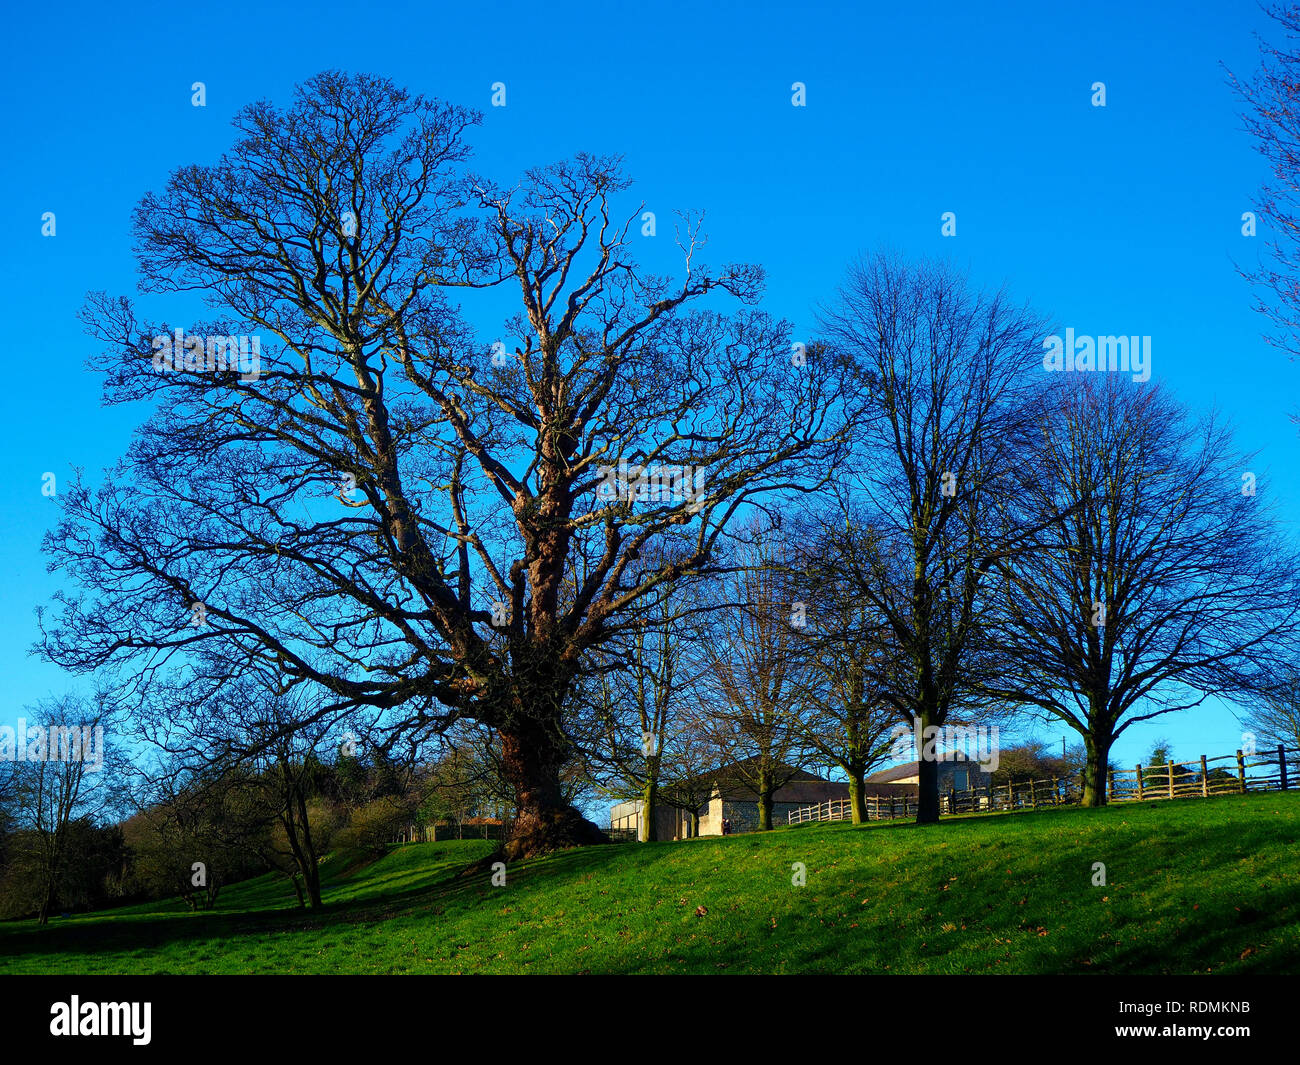 Impressive large trees with bare winter branches on a green hilltop with farm buildings and a vivid blue sky in Yorkshire, England - Stock Image